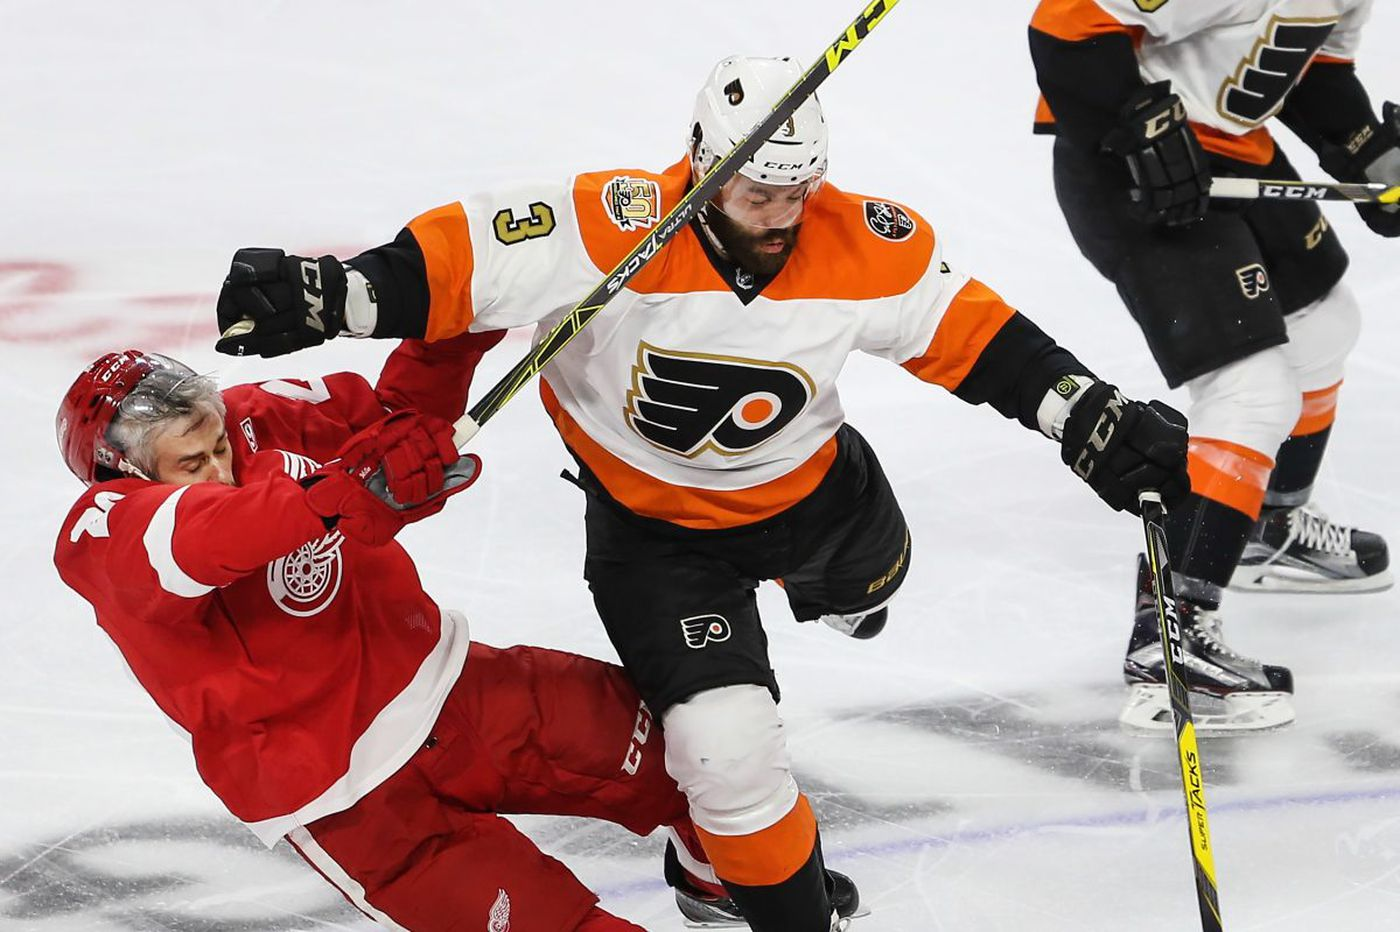 Flyers' Radko Gudas disagrees with length of suspension